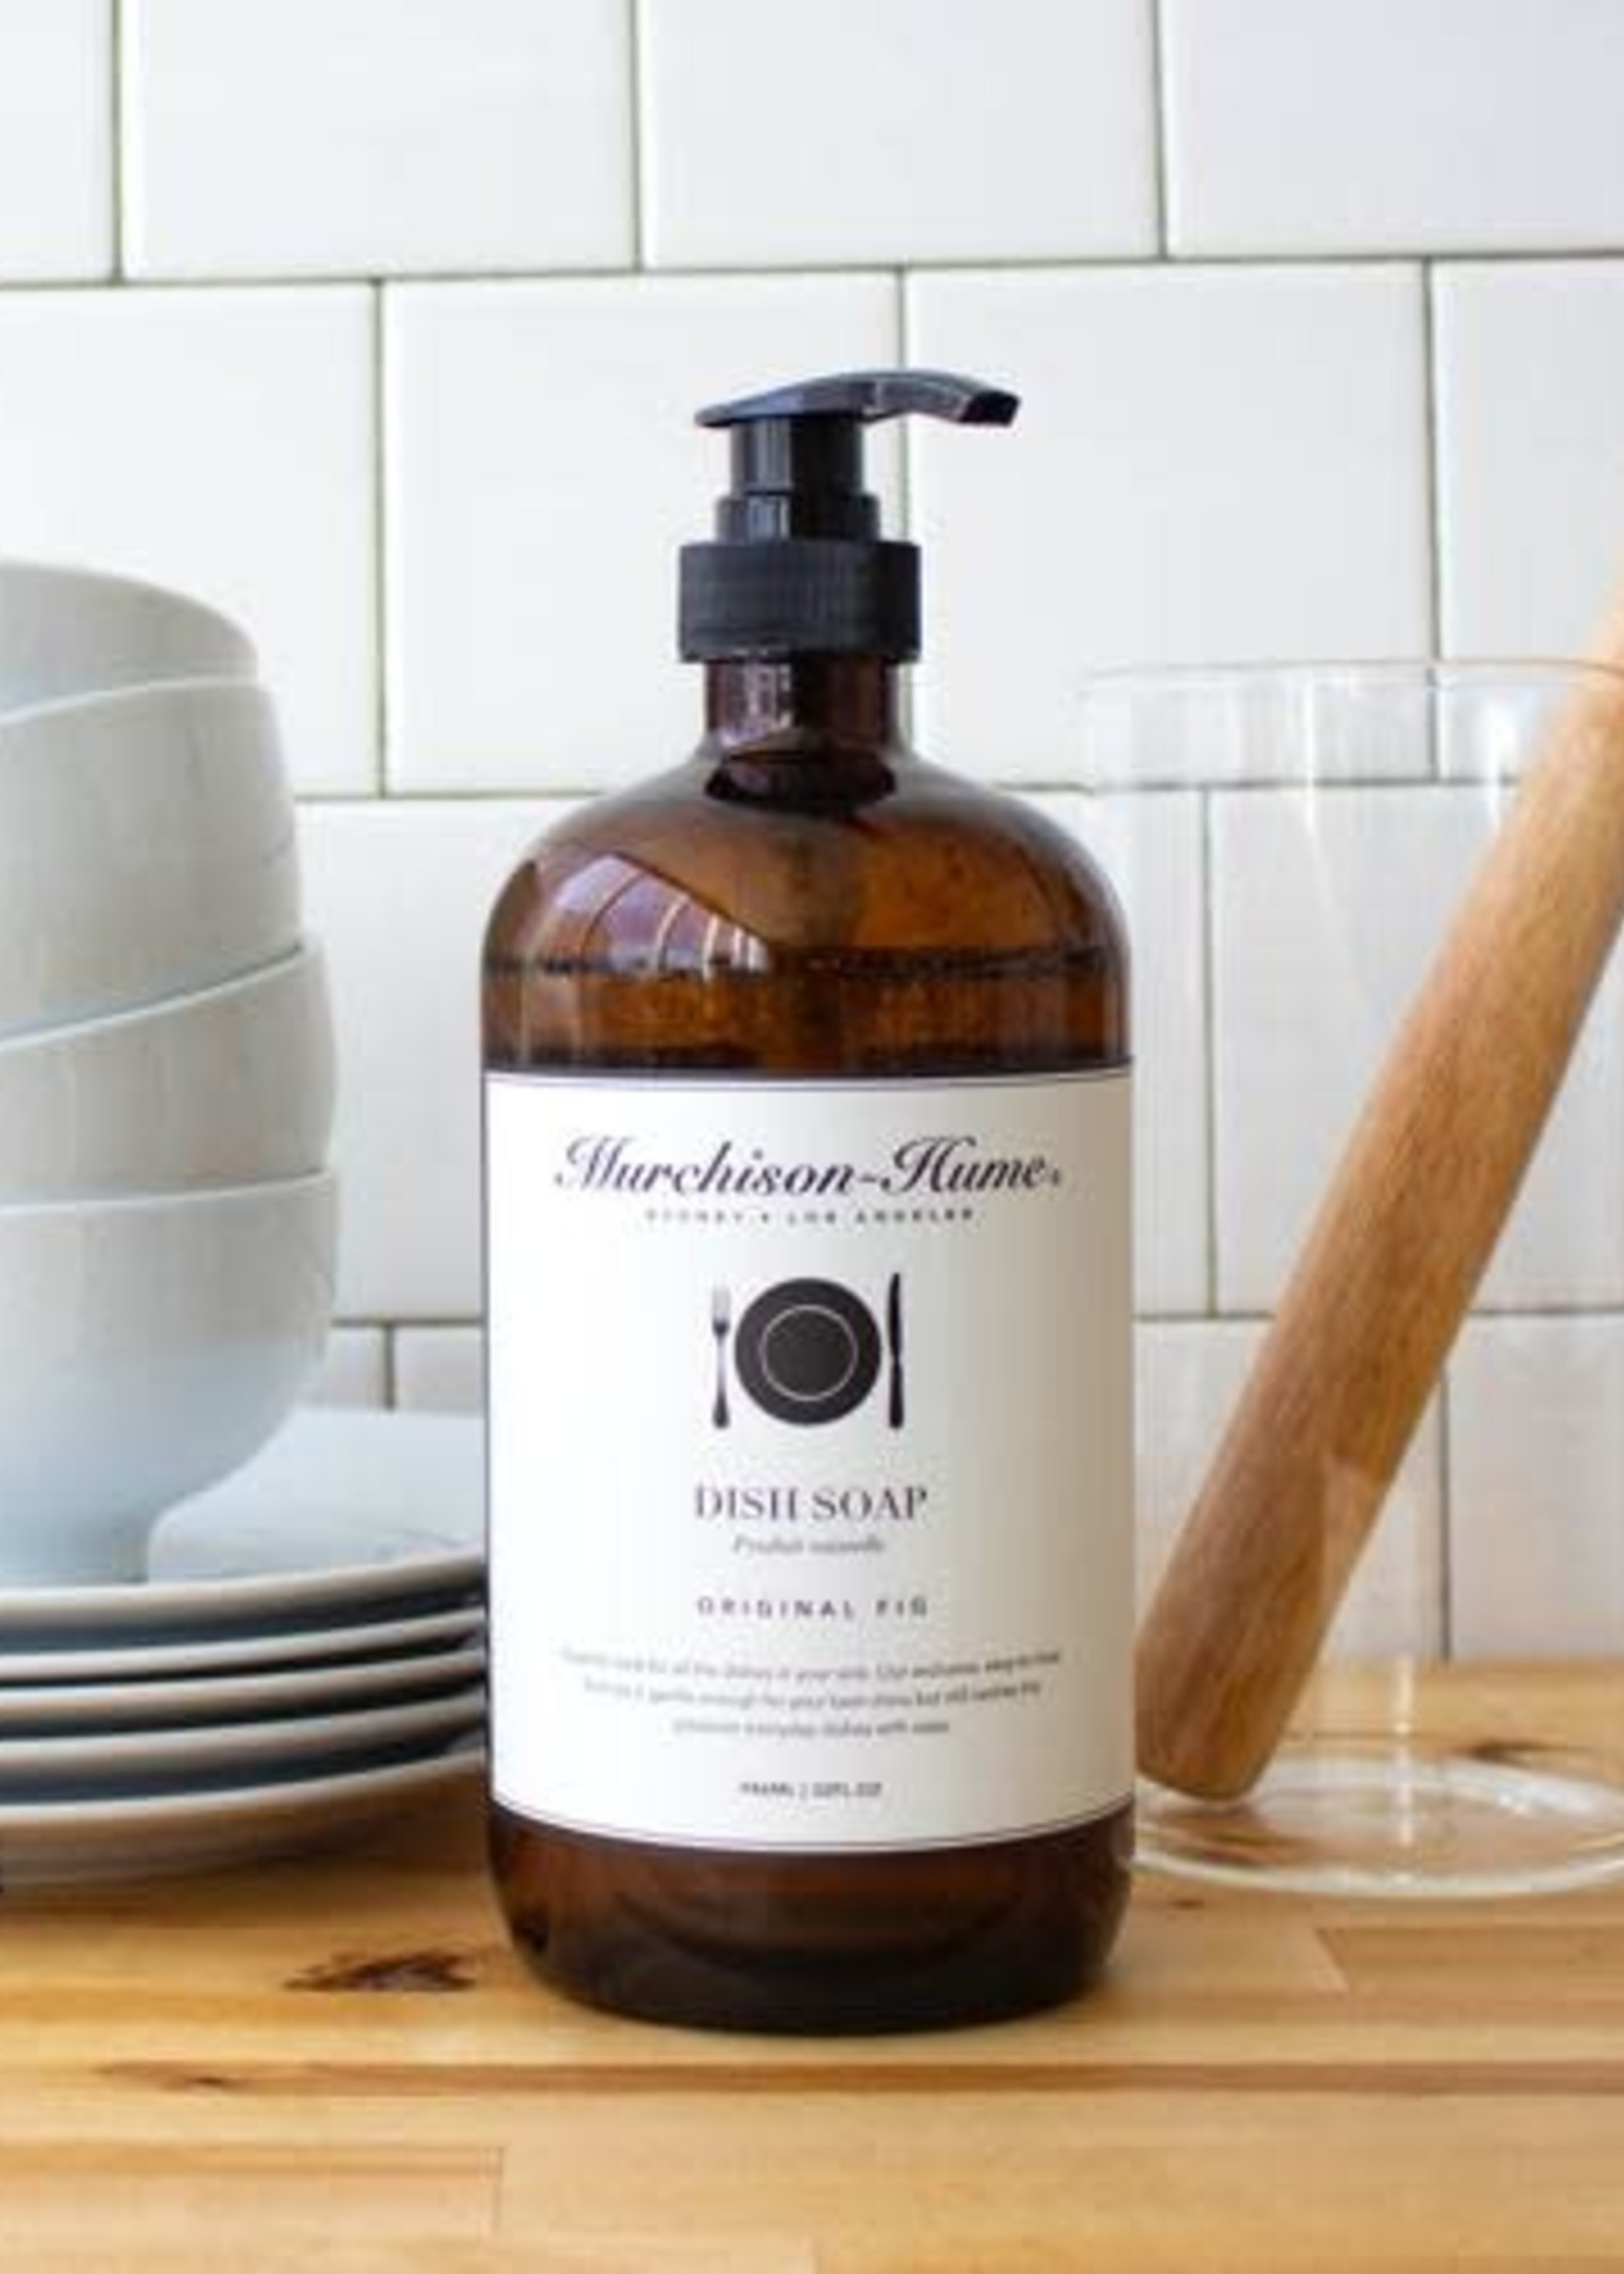 Murchison-Hume Murchison-Hume Heirloom Dish Soap 32oz Pump Fig